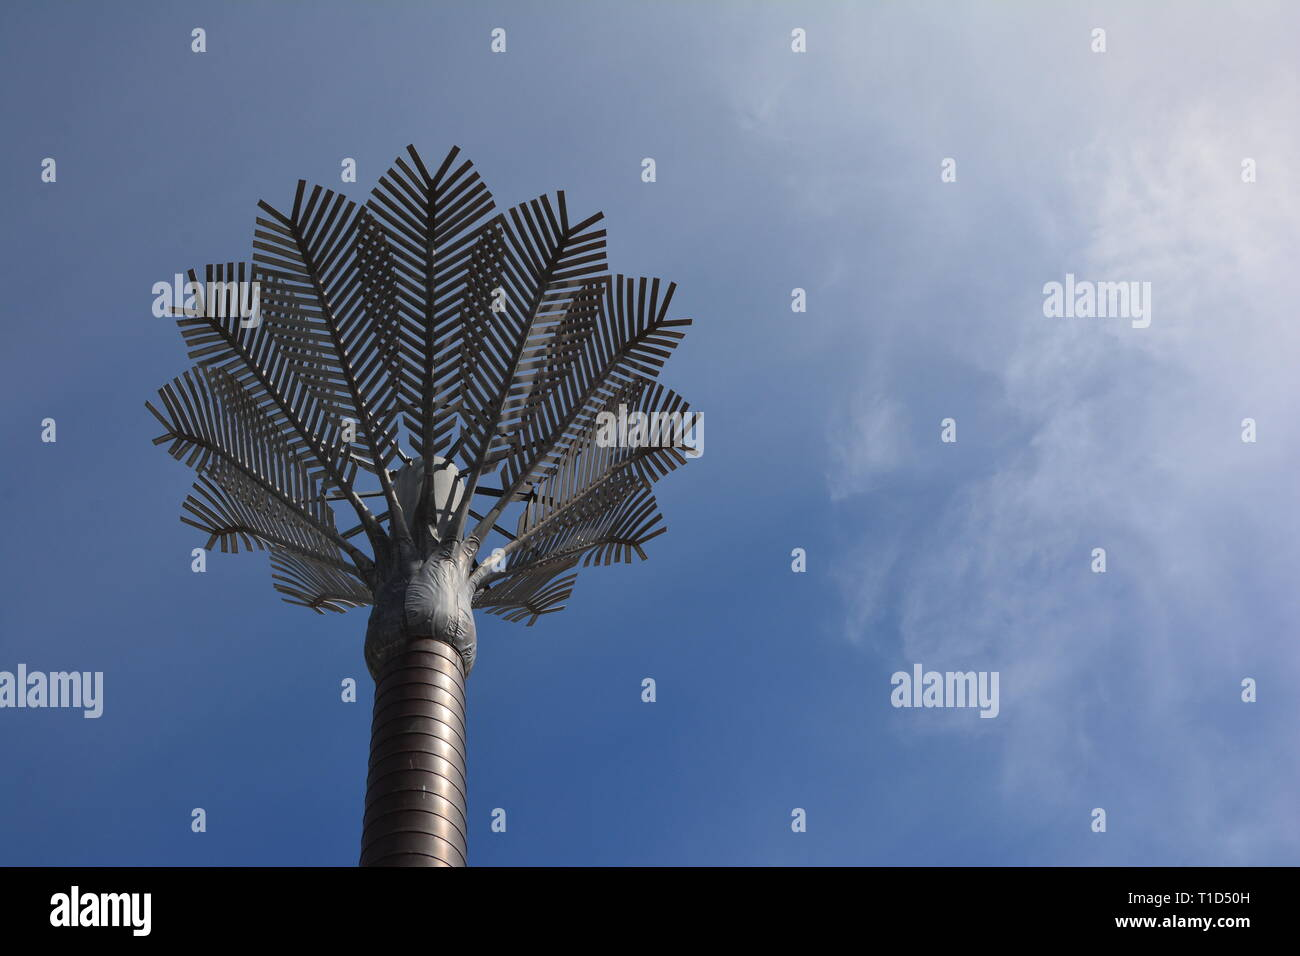 Stylised Nikau Palm Trees designed by architect Ian Athfield made from copper, zinc, and steel. Civic Square, Wellington, New Zealand - Stock Image